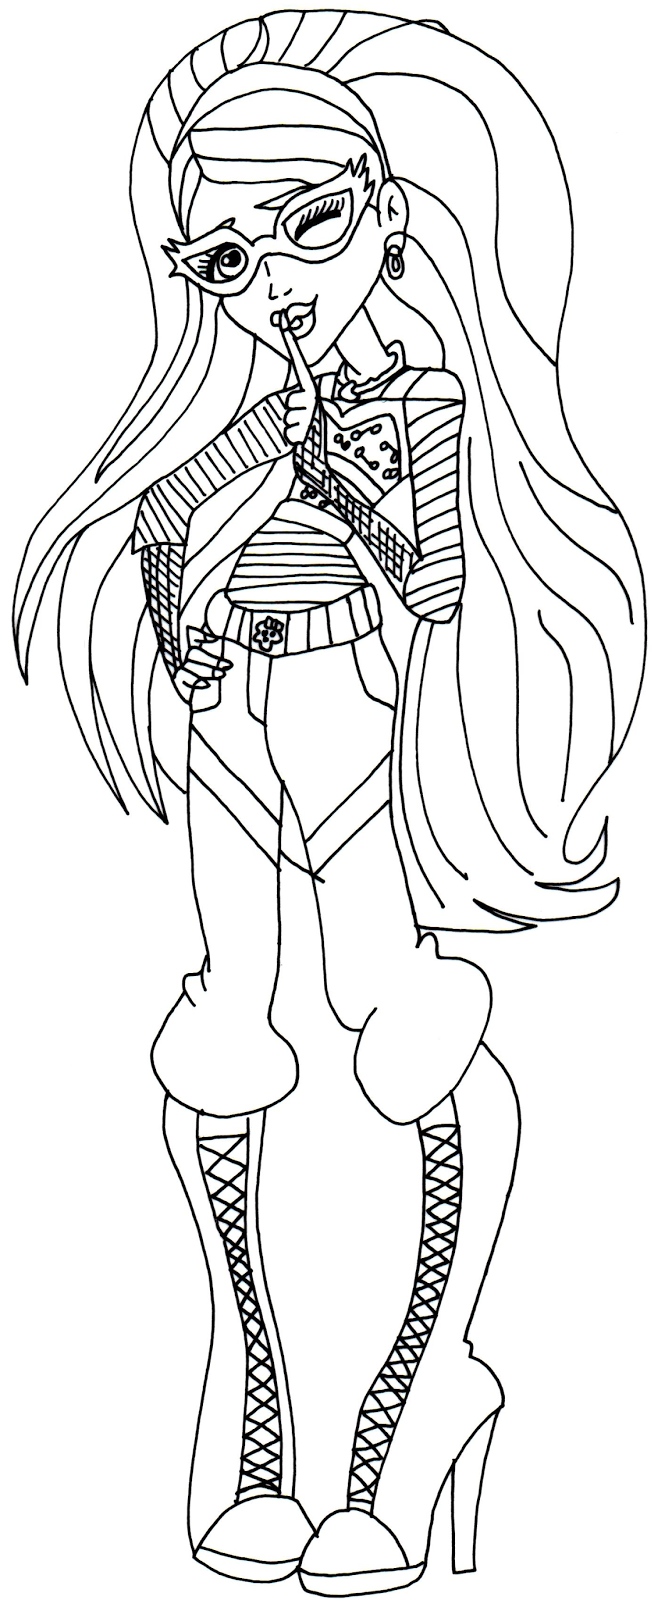 Free Printable Monster High Coloring Pages Ghoulia Yelps Monster Coloring Pages Coloring Pages Fairy Coloring Pages